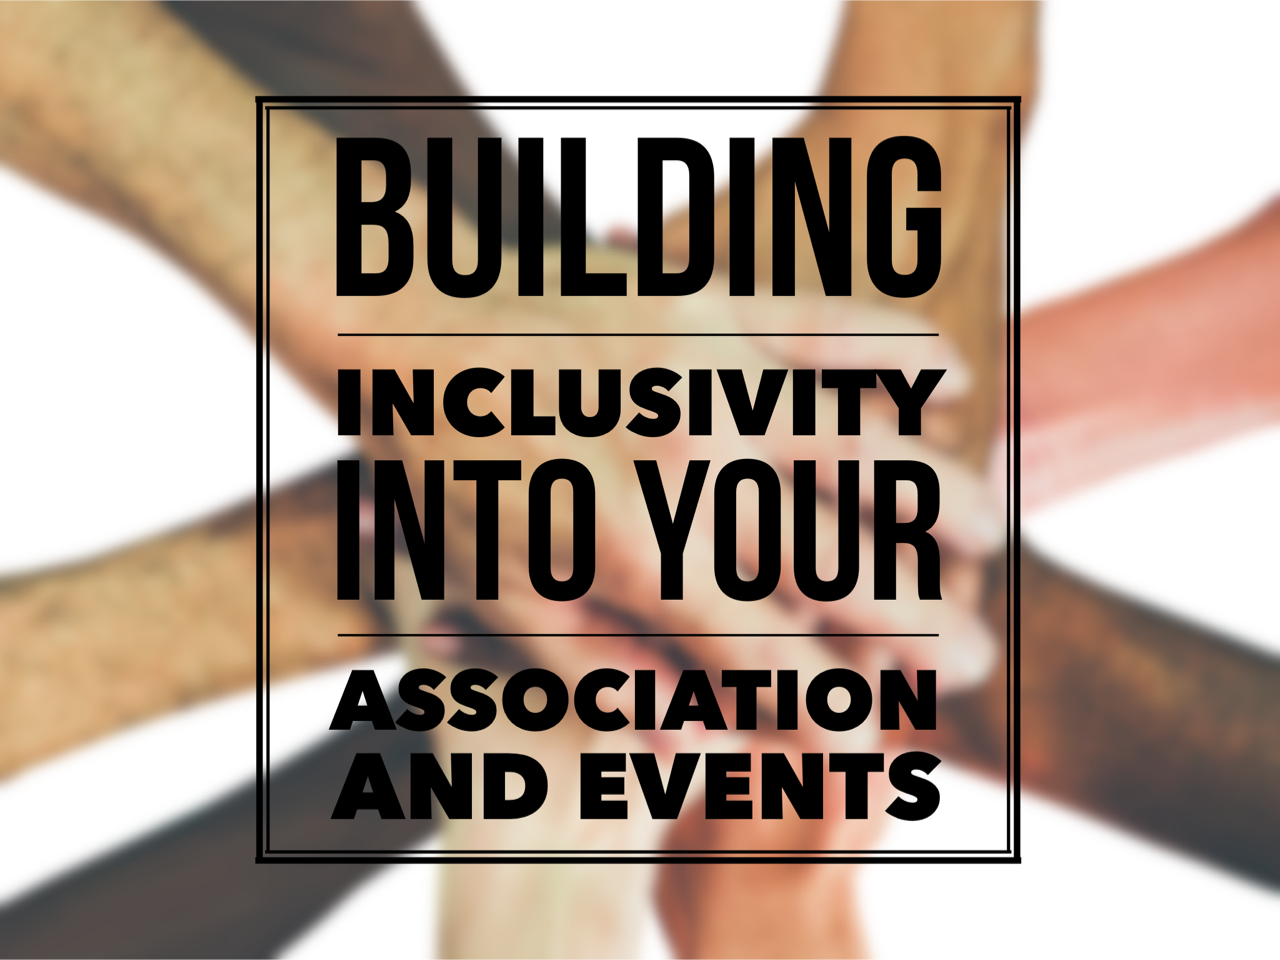 Building Inclusivity into your Association and Events